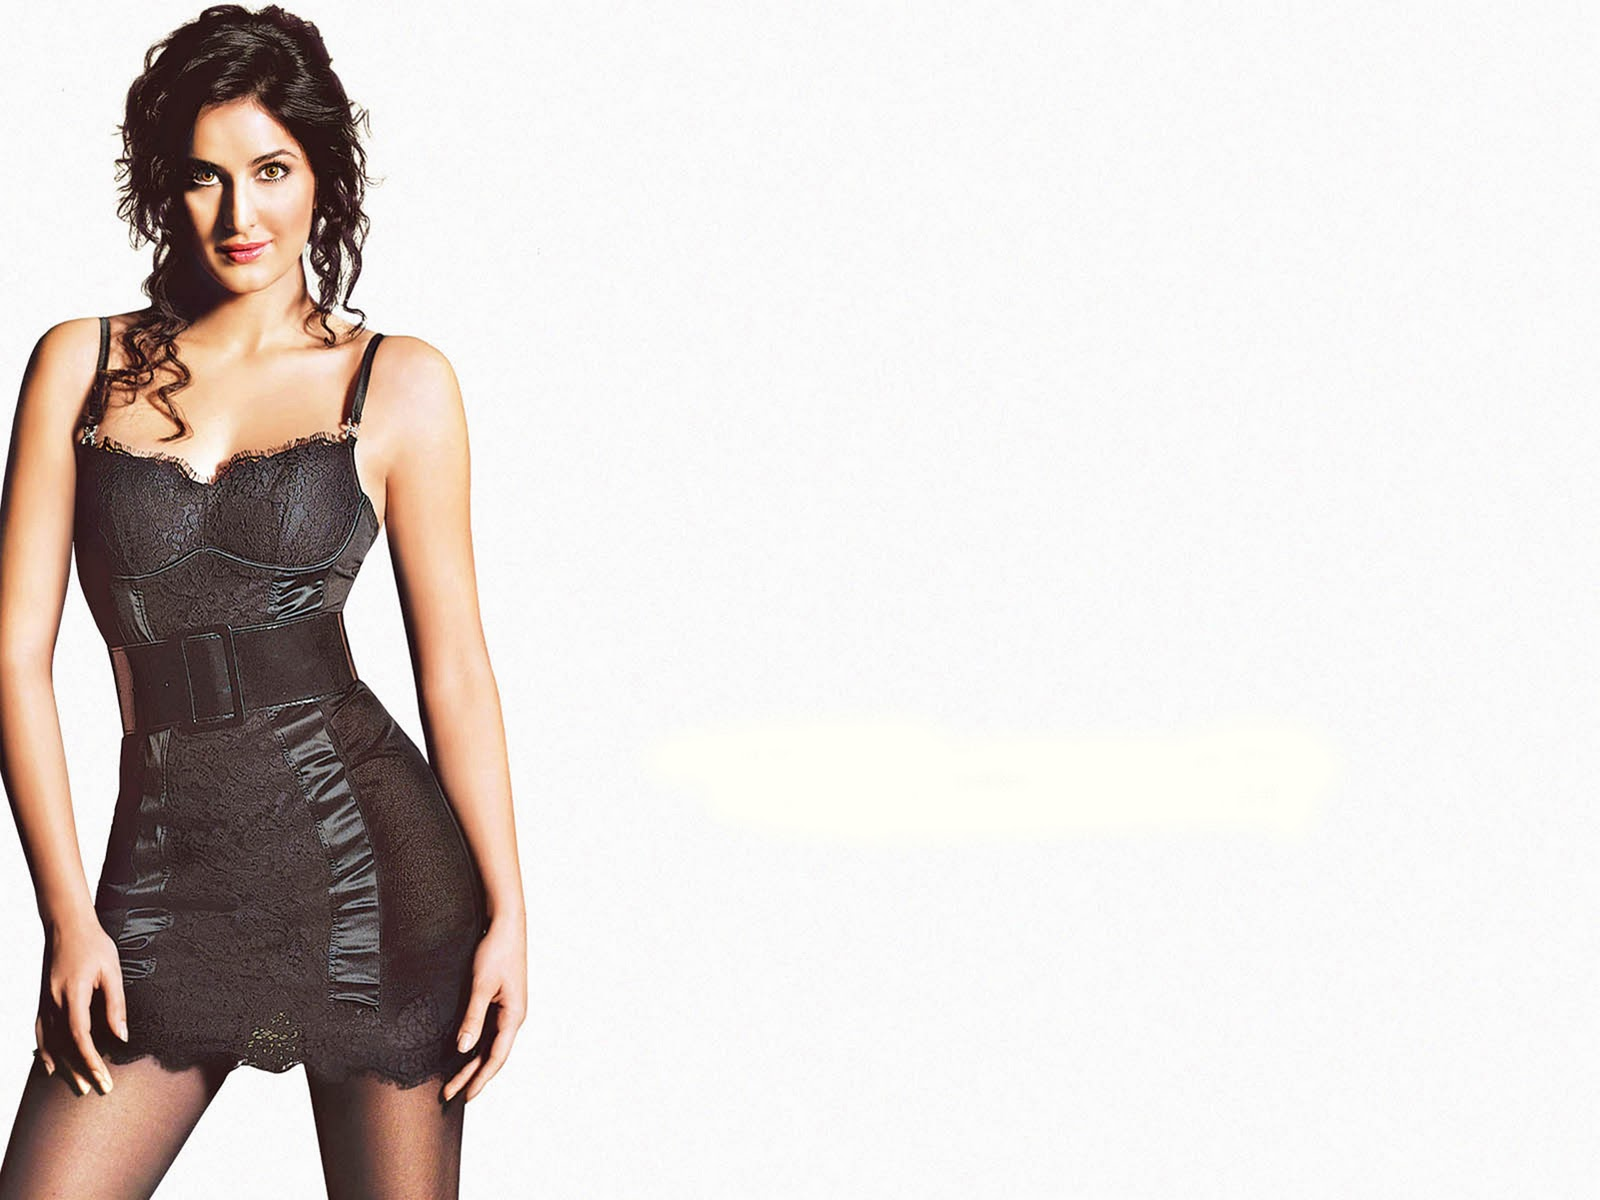 http://2.bp.blogspot.com/-cfRXTZB31MU/Tpb7HmUOU8I/AAAAAAAABkM/-nNP2XMslz4/s1600/The-best-top-desktop-hot-girl-katrina-kaif-wallpapers-hd-katrina-kaif-wallpaper-4.jpg